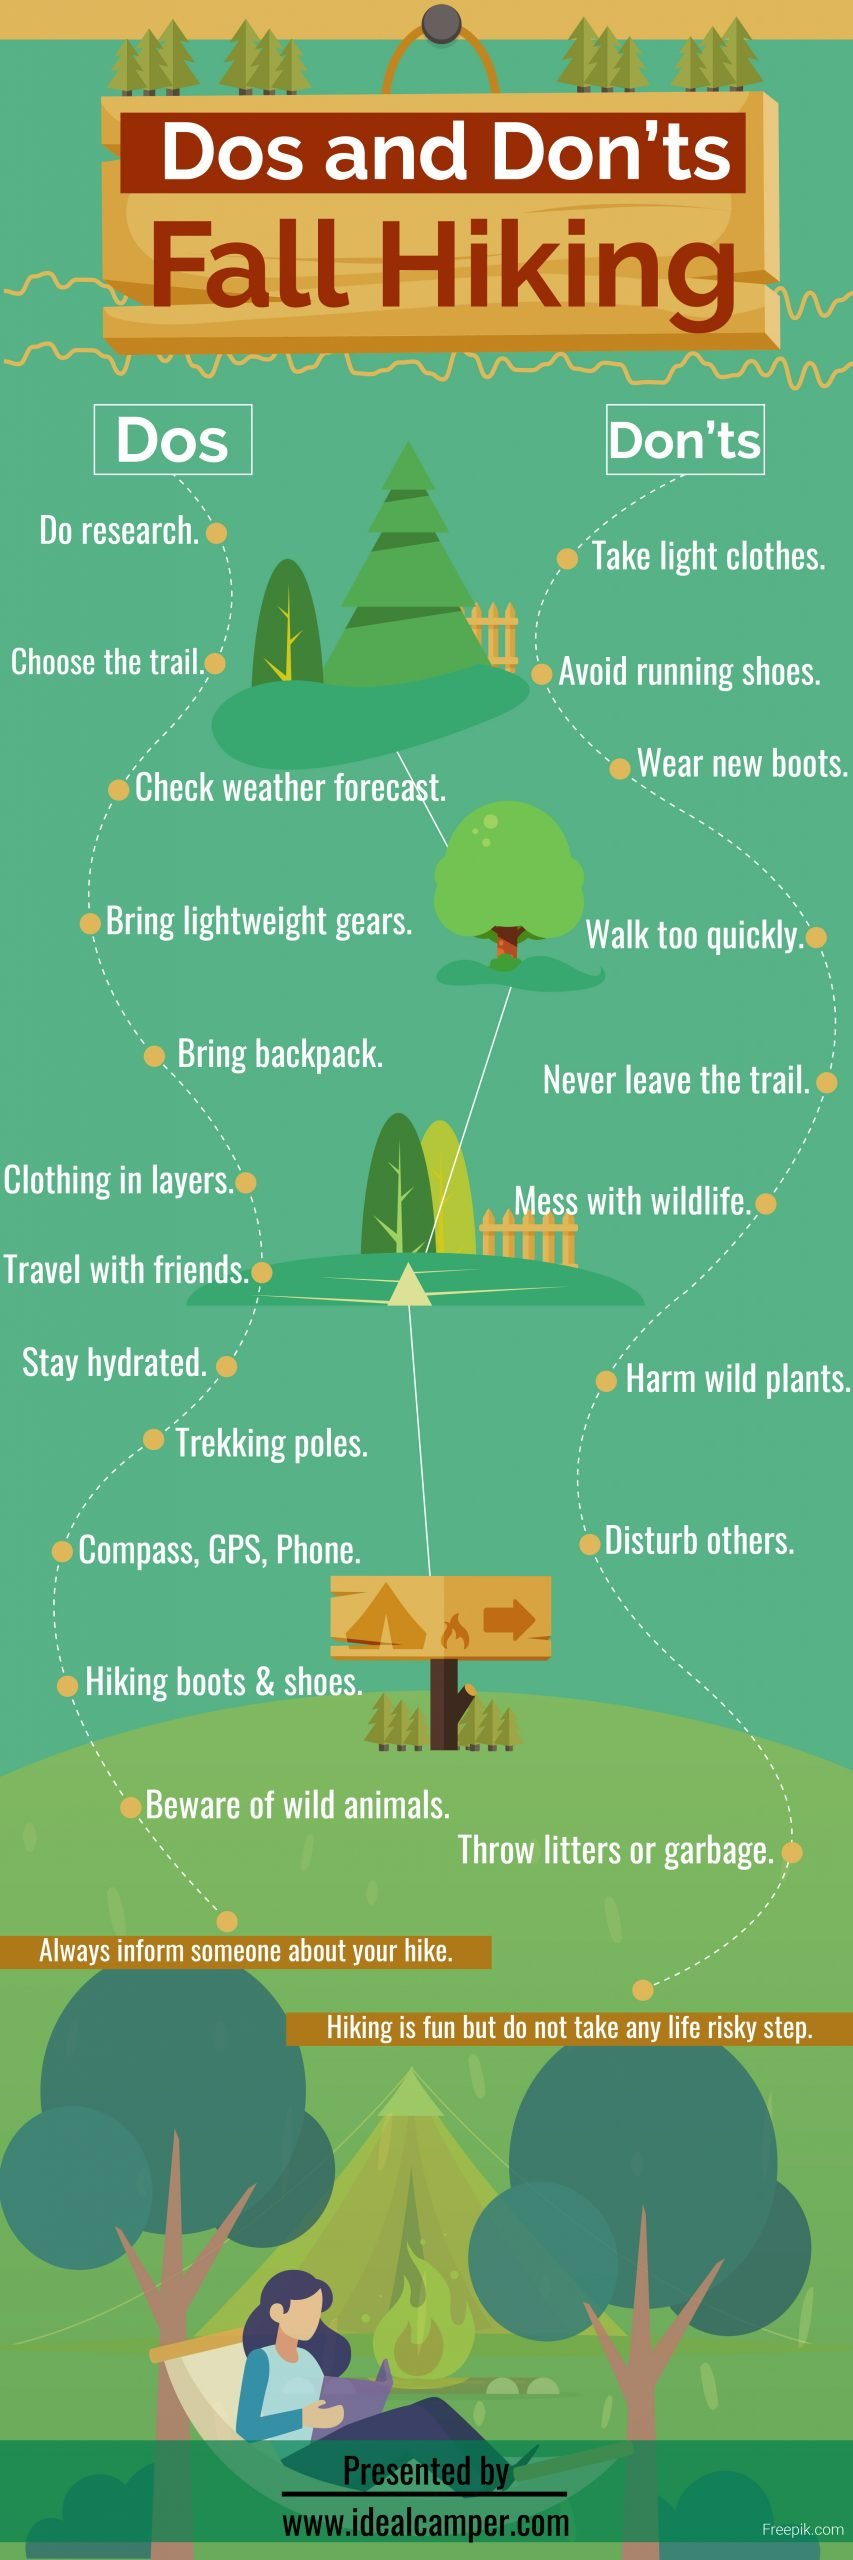 Dos and donts of fall hiking